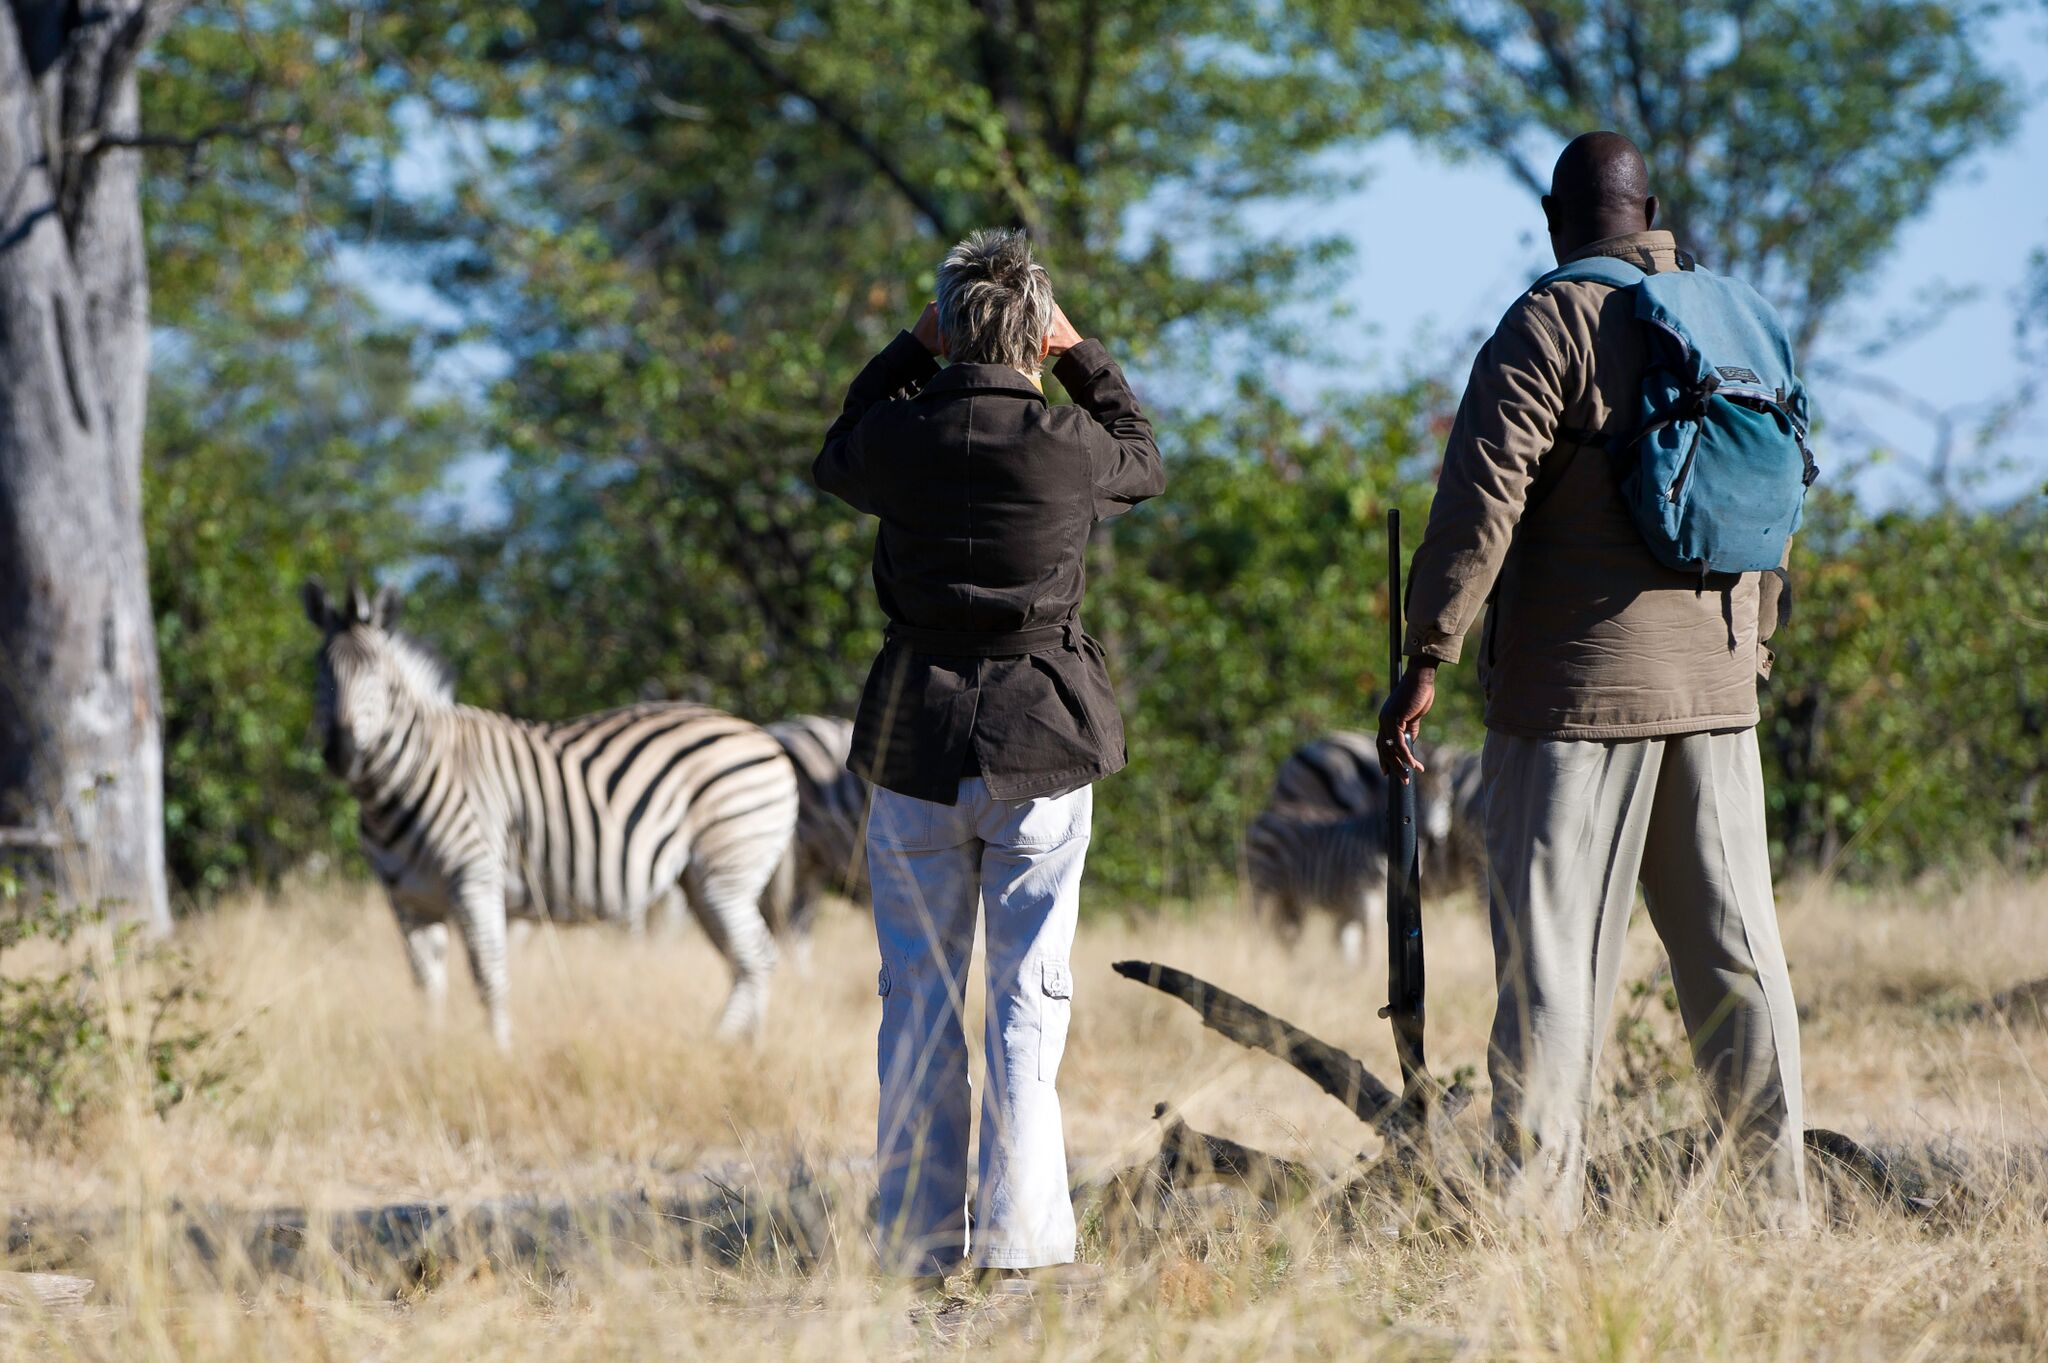 walking safari in Zambia